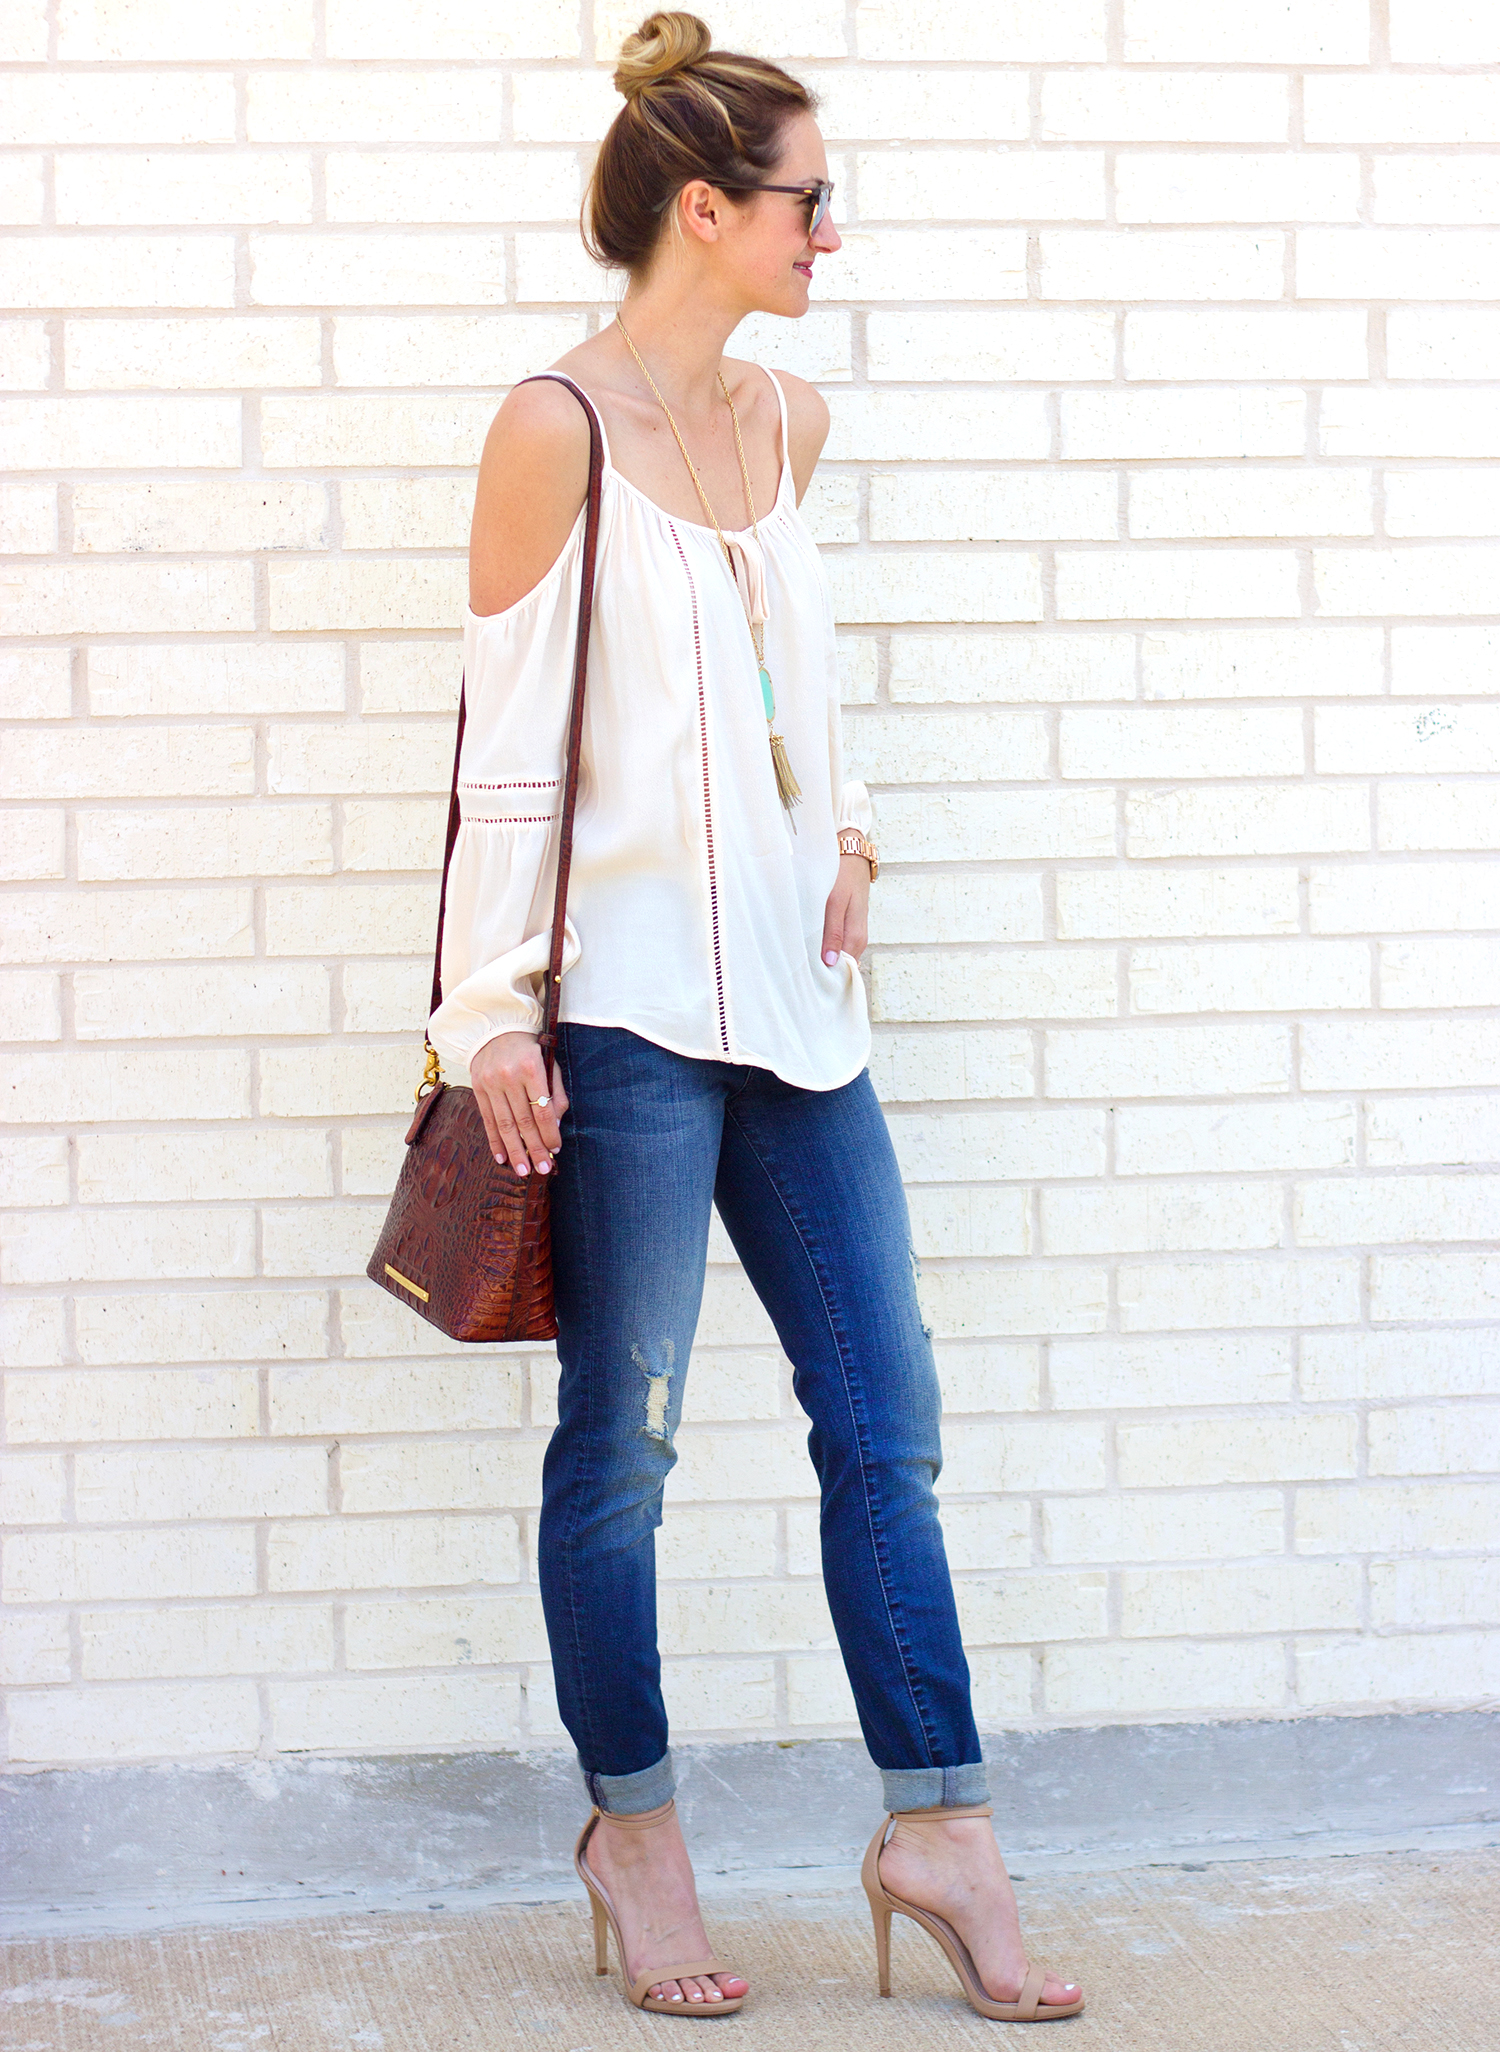 1-livvyland-blog-olivia-watson-austin-texas-fashion-blogger-kut-against-the-kloth-skinny-jeans-cream-nude-cold-shoulder-off-top-spring-nordstrom-stecy-heels-steve-madden-5